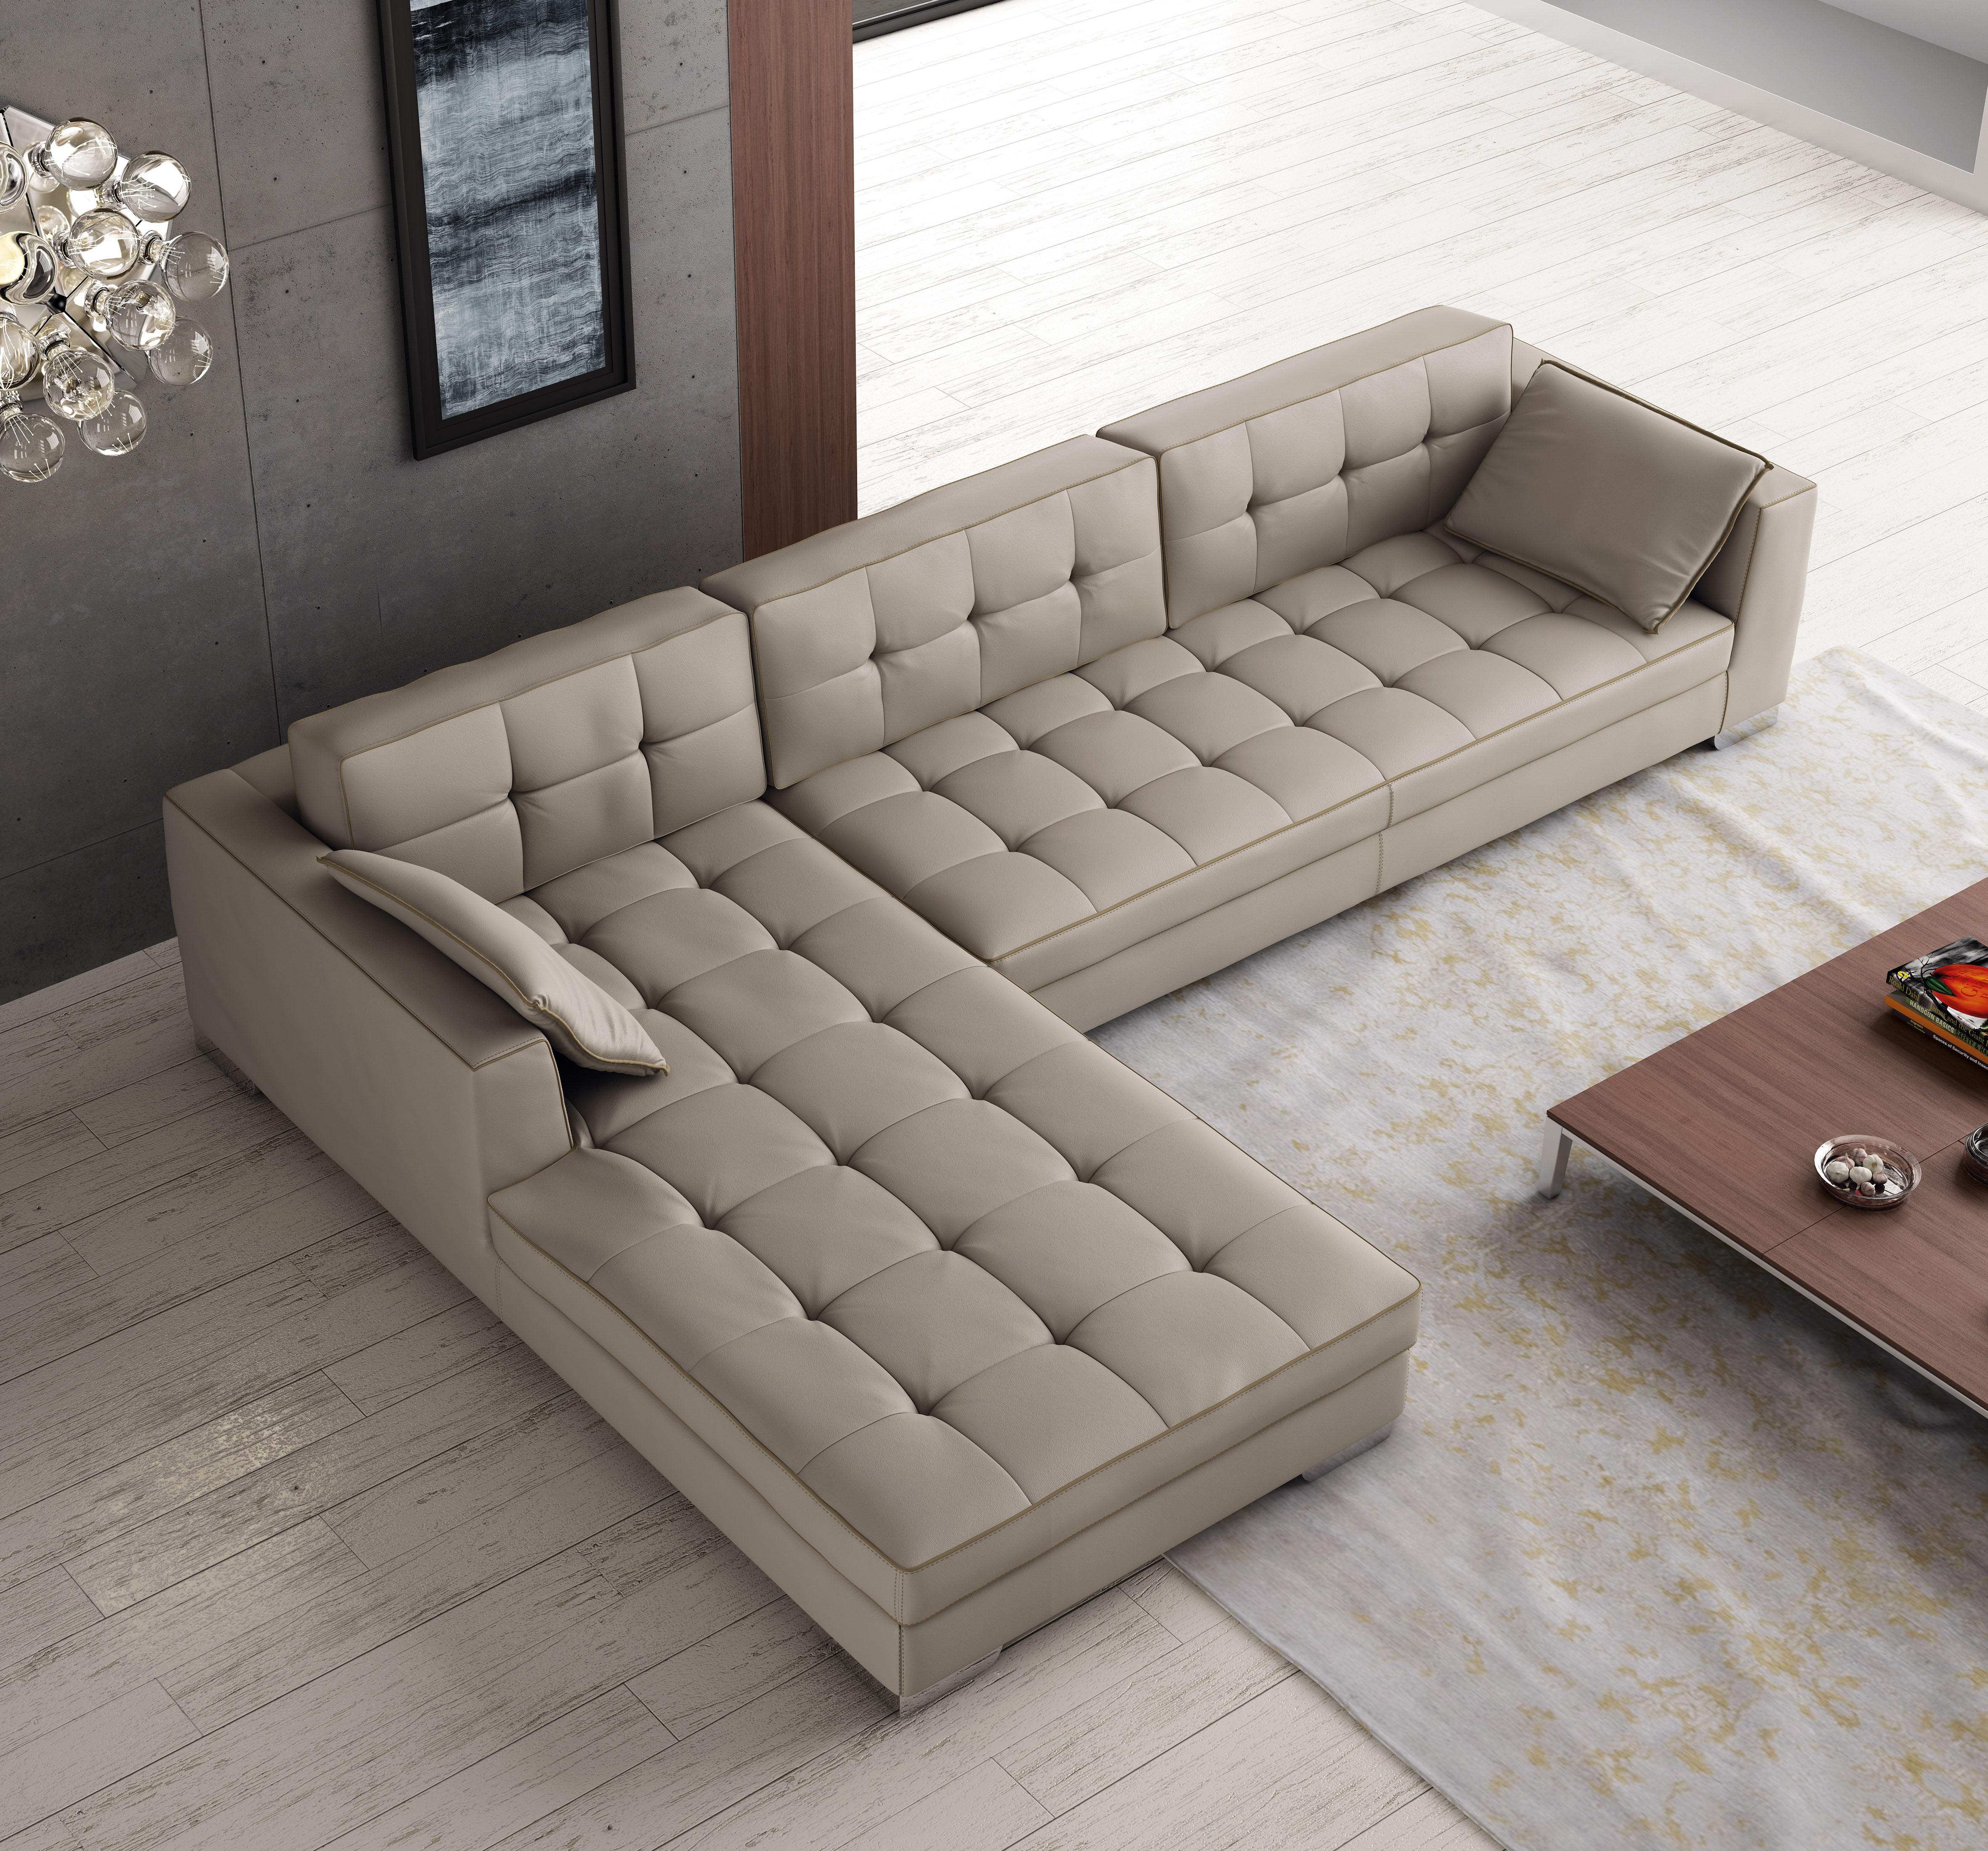 Sectional Sofa Design Leather: Luxury Tufted Designer All Leather Sectional Chesapeake